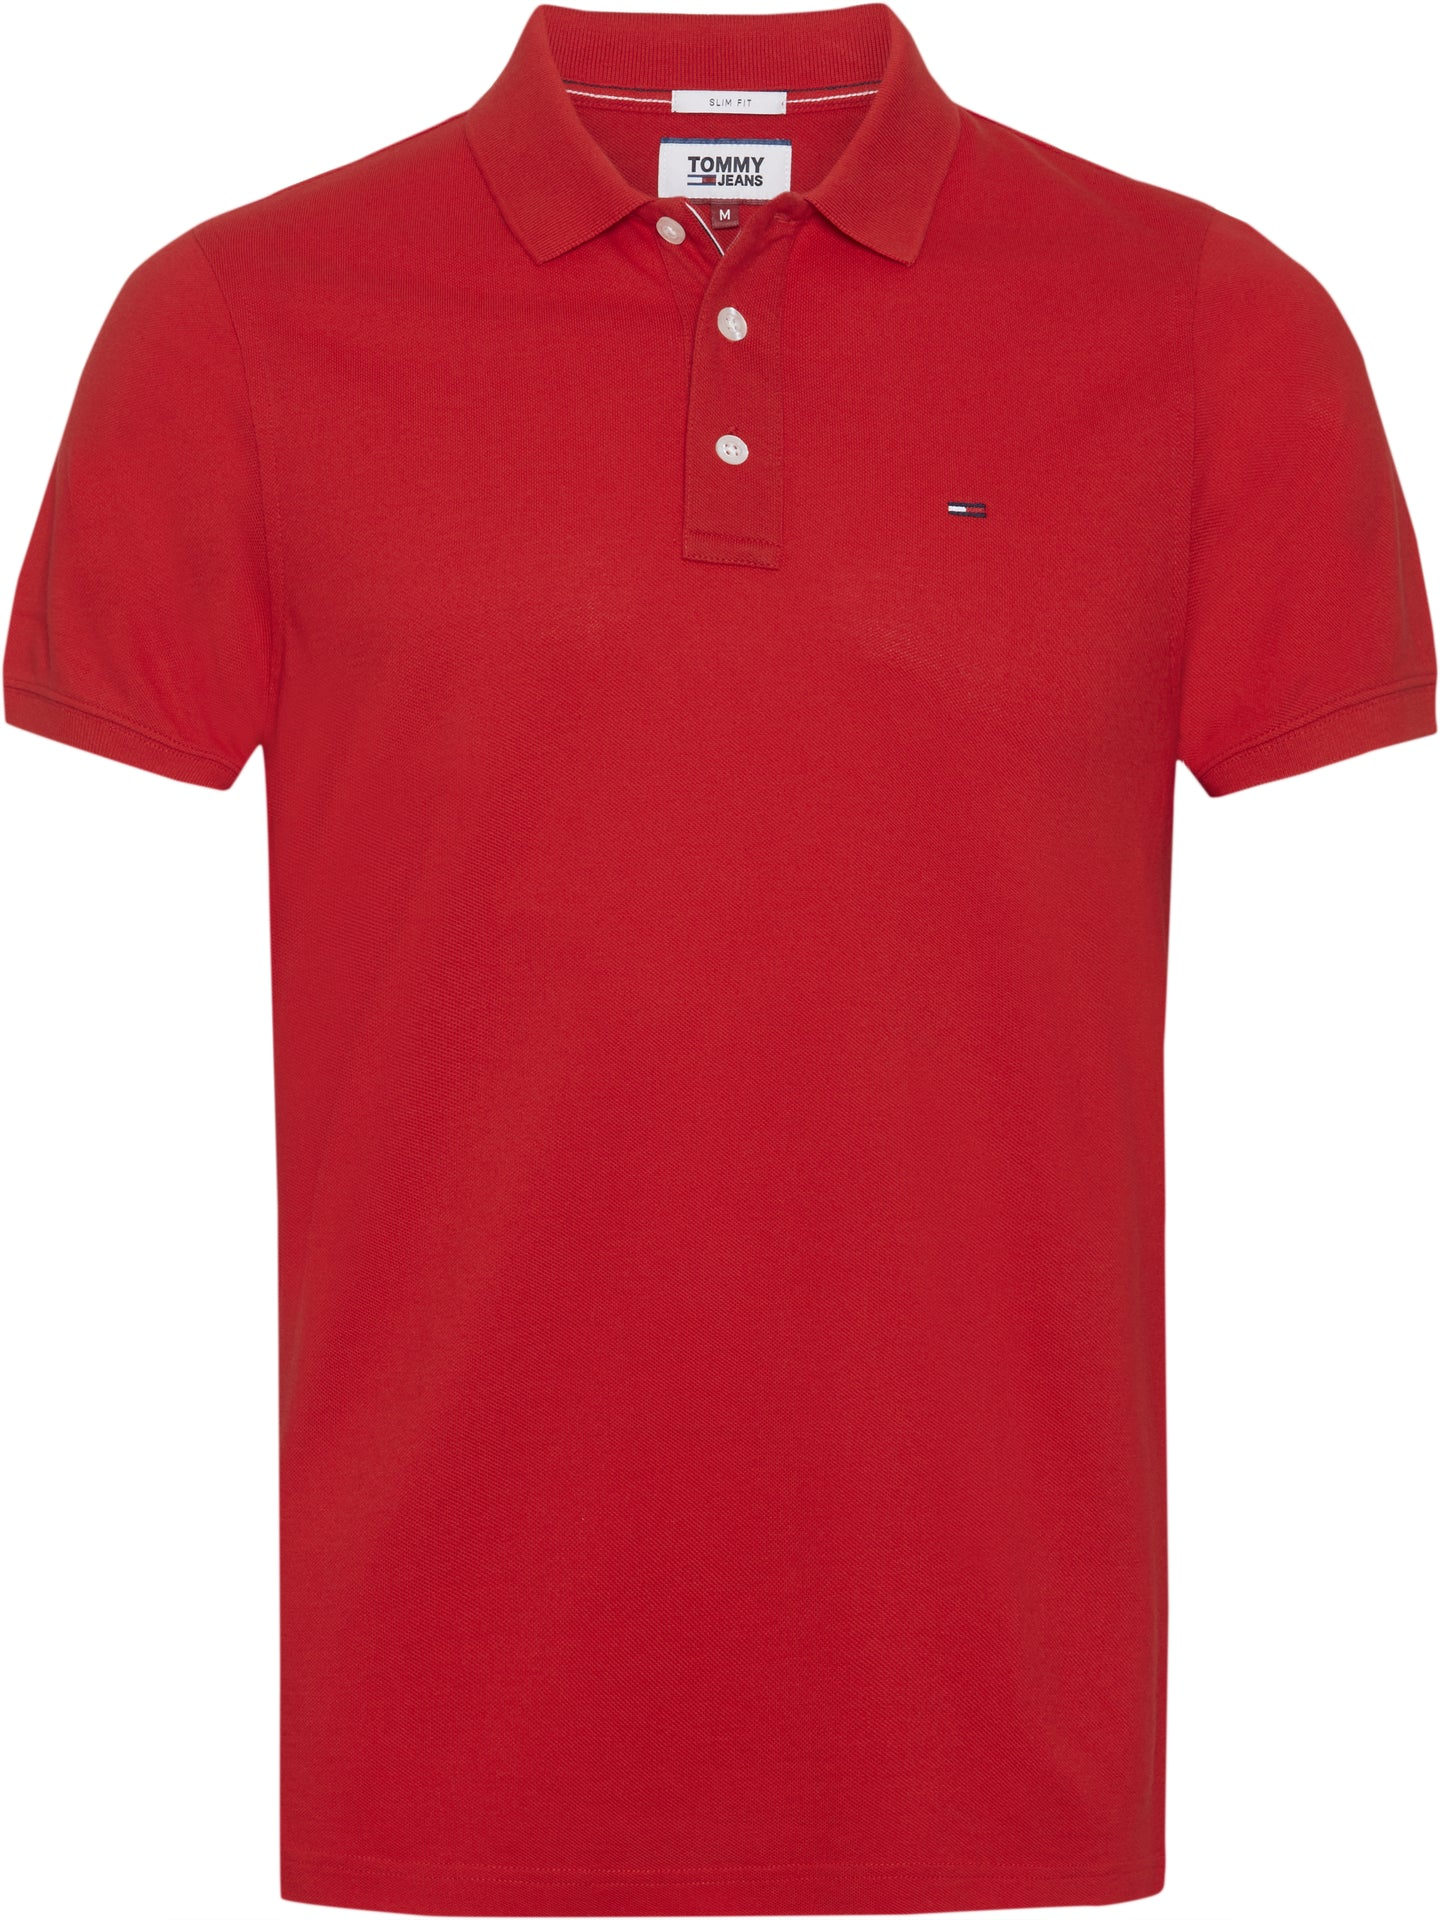 Tommy Hilfiger Jeans Mens Polo Shirt For Sale Online Ireland DM0DM08068